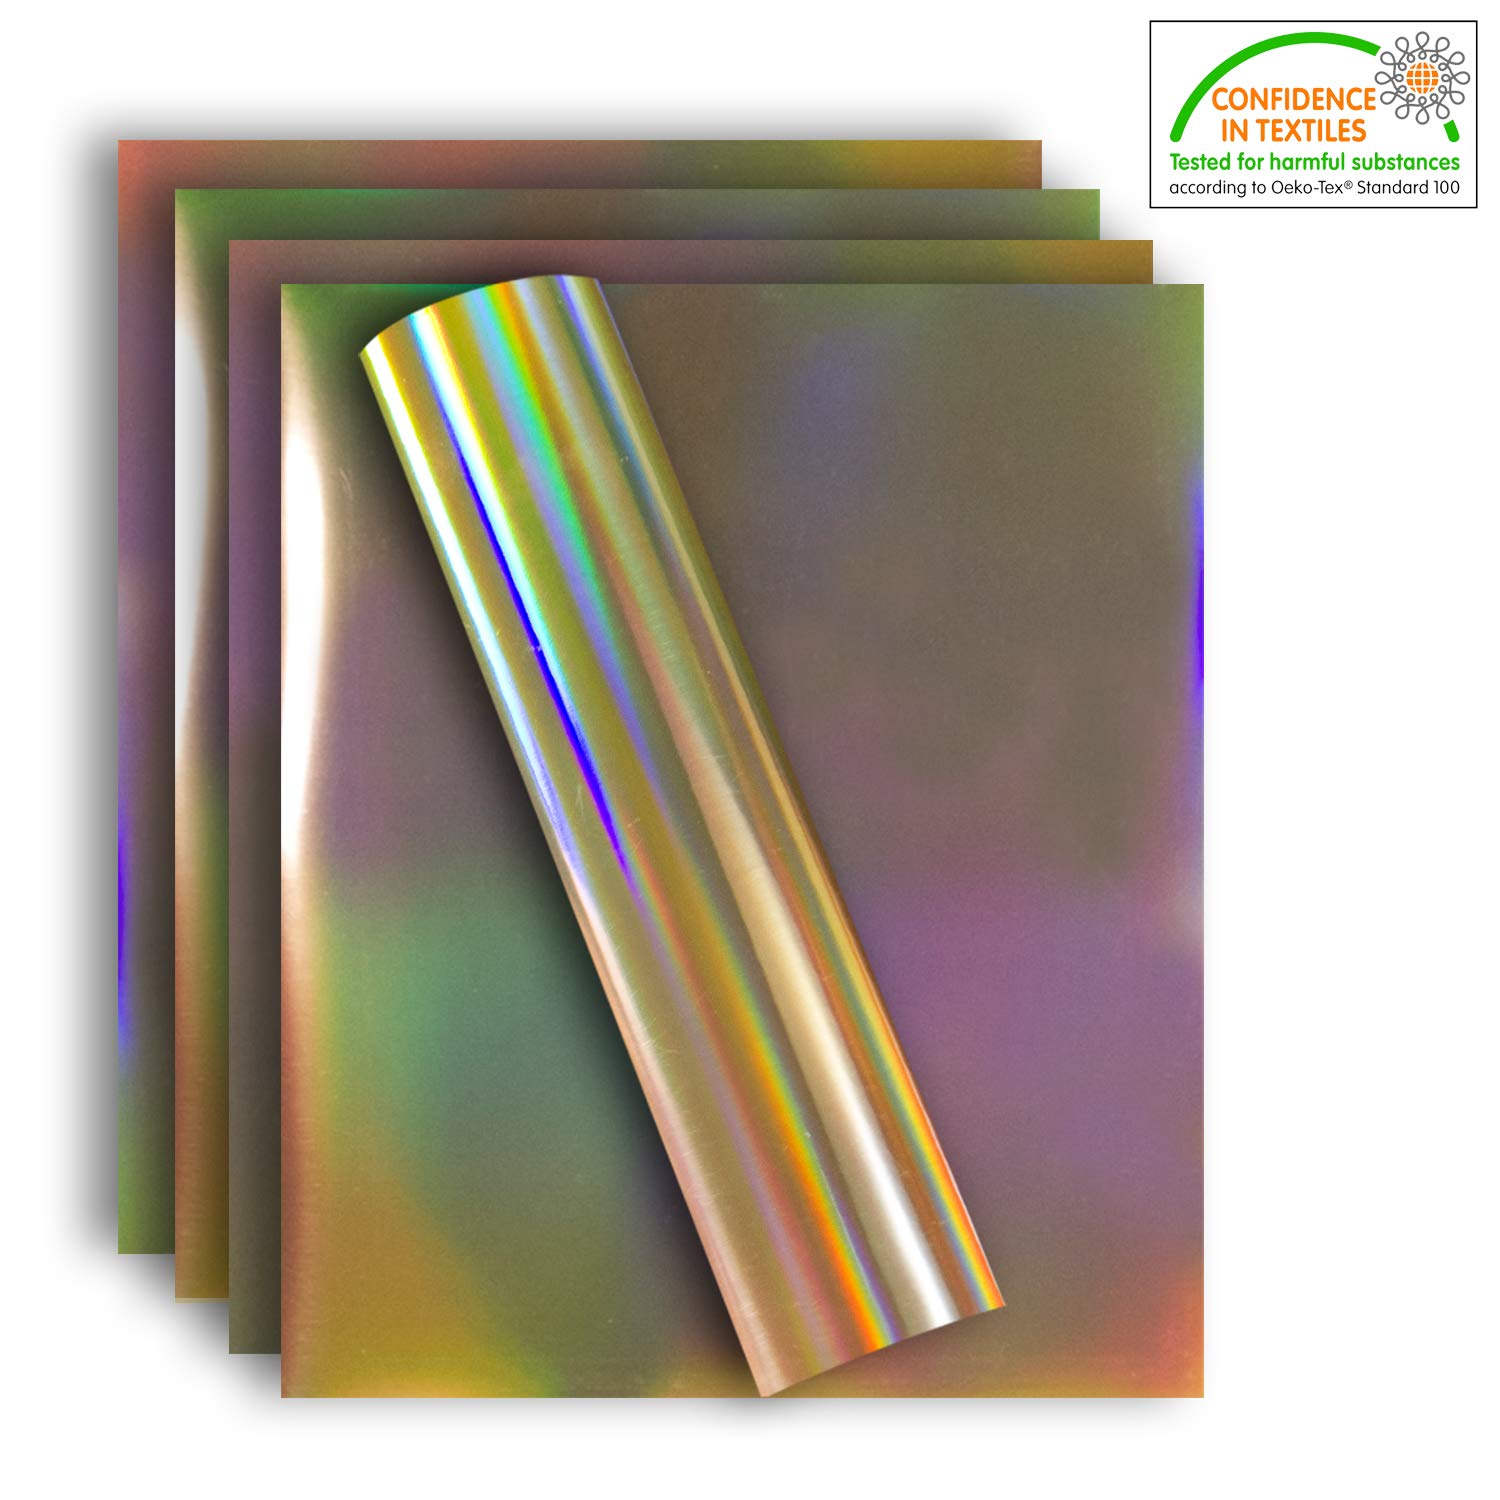 Holographic Stretchable Metallic Heat Transfer Vinyl Iridescent Gold Foil, Iron On HTV Bundle for DIY Your Own Clothes, 12x10 Inch, Pack of 5 Sheets, Eco-Friendly